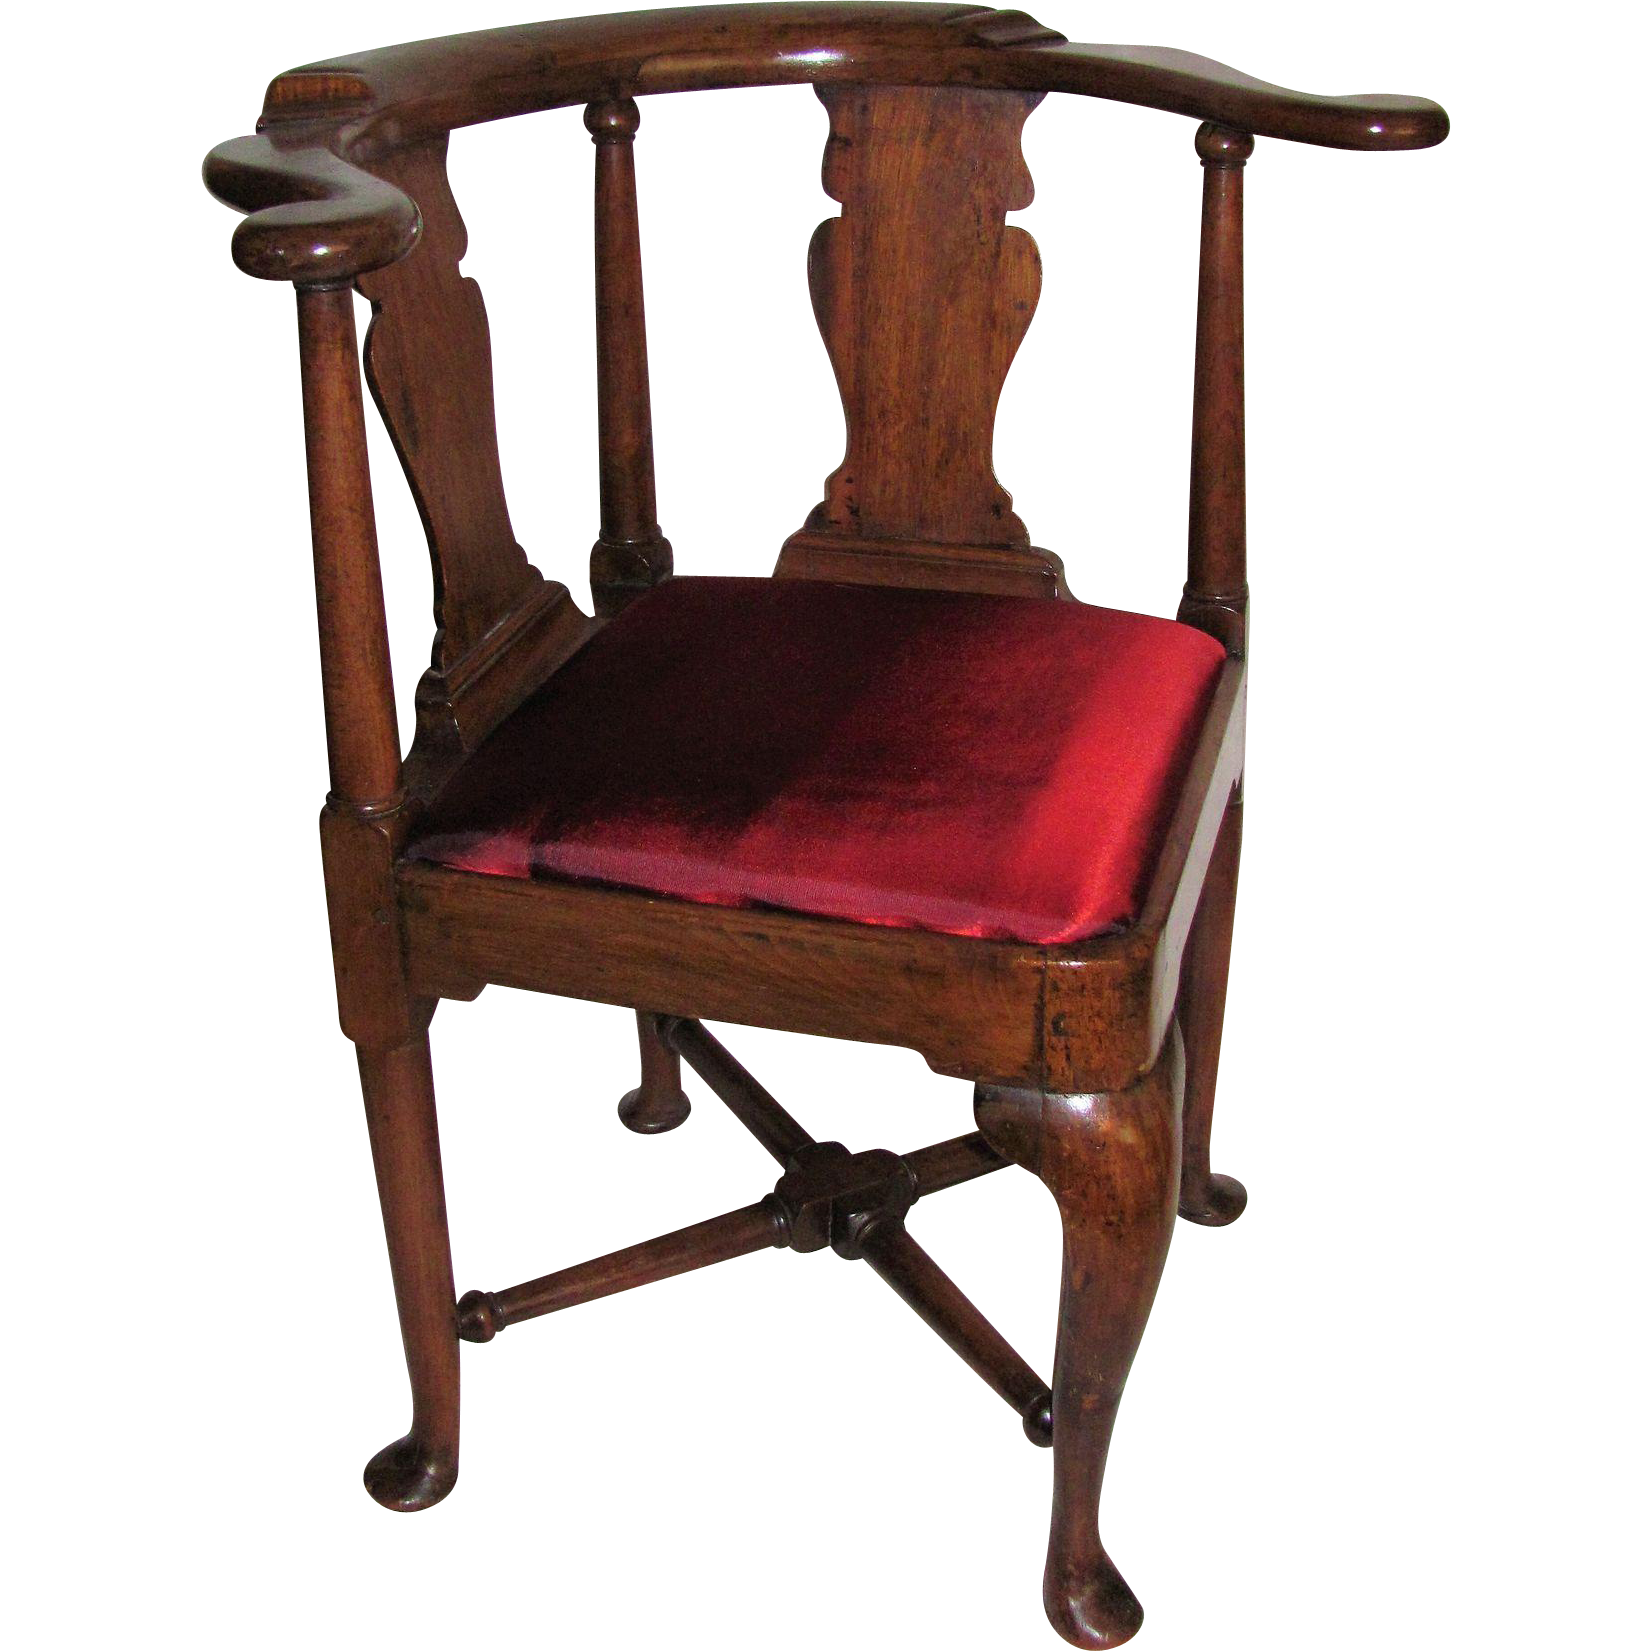 Antique English or American Queen Anne Walnut Corner Chair Circa 1730